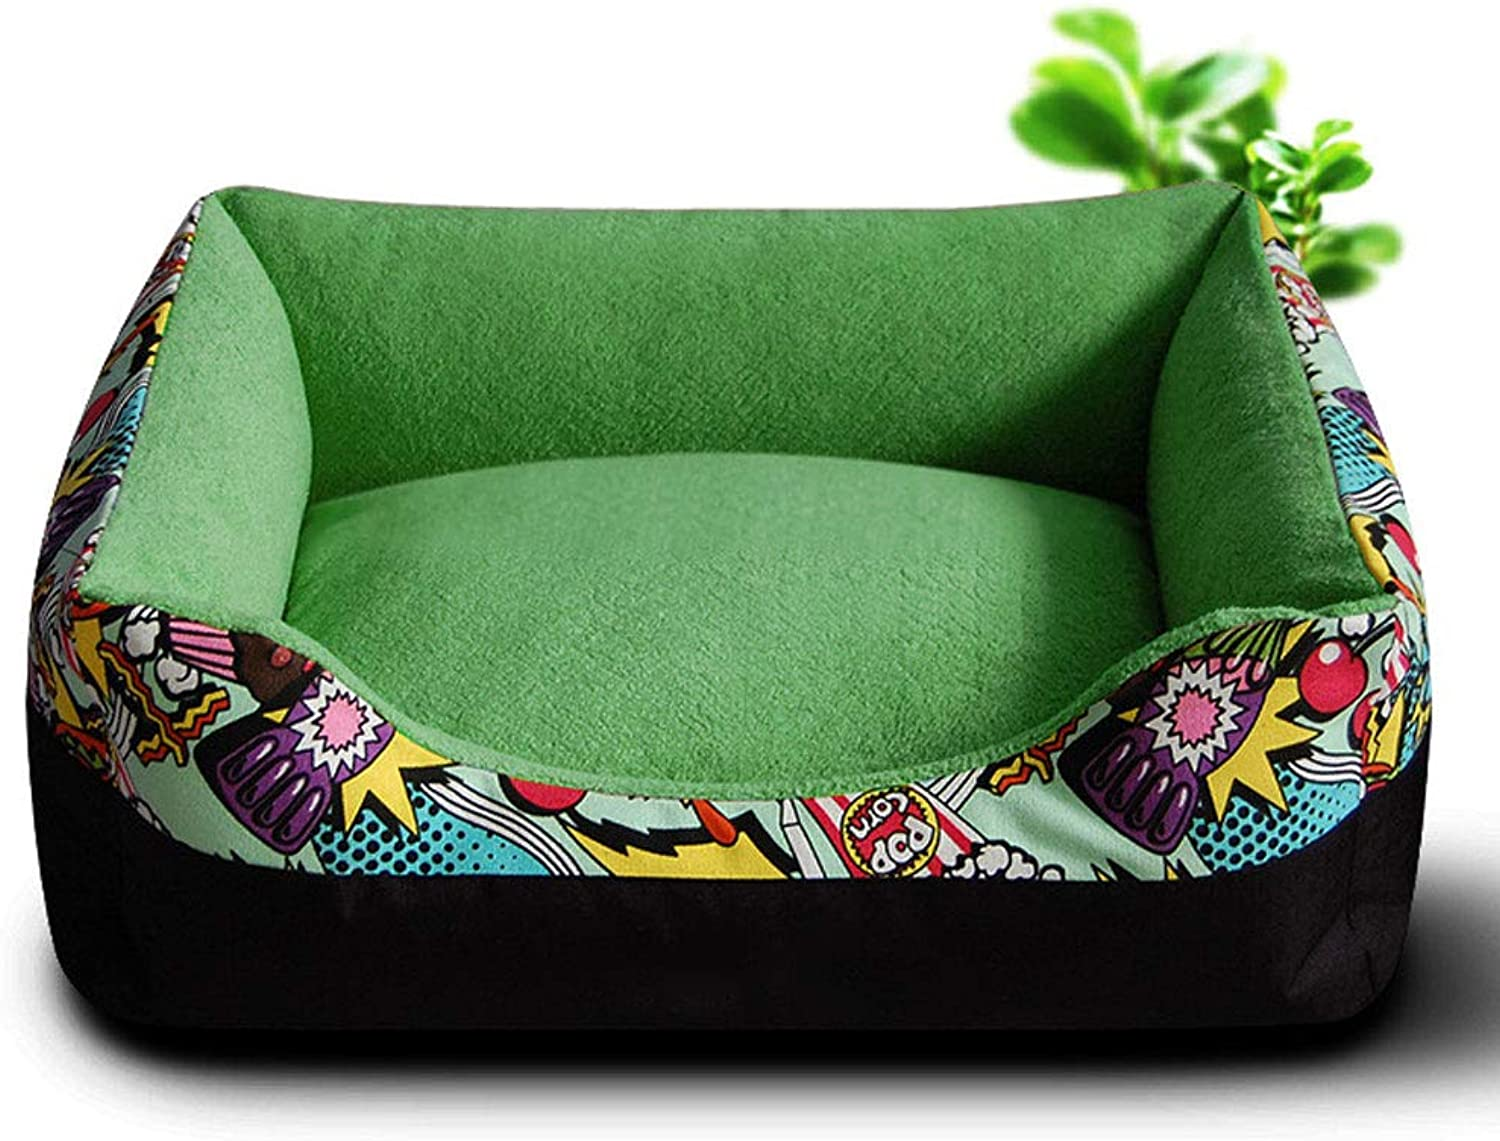 LJM Dog Bed Pet, Bolster Bed Raised Rim Supporting Good Sleep Great Small Medium Dogs (color   Green)